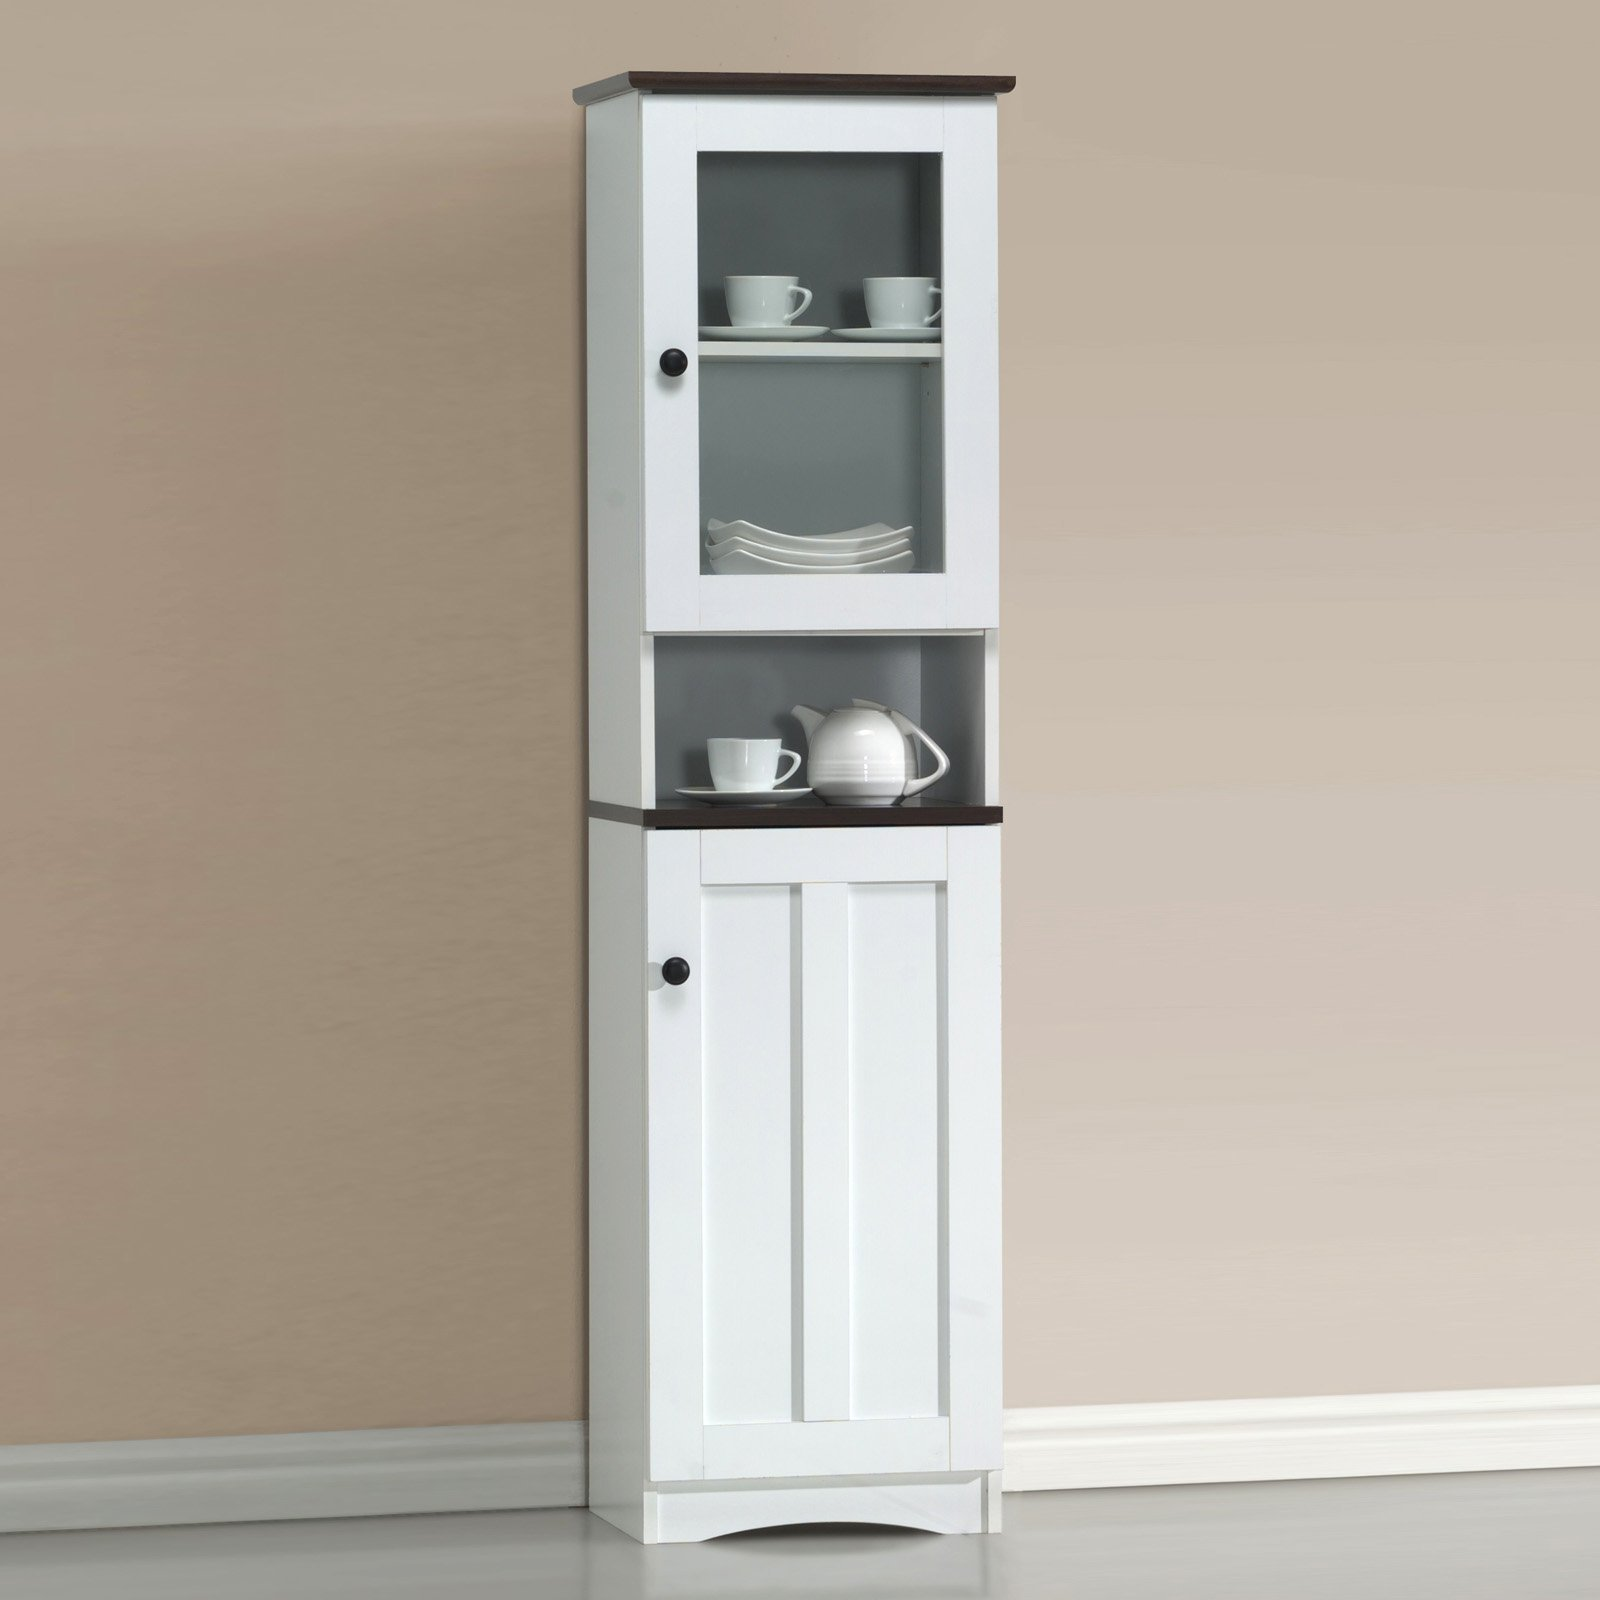 China Cabinet, Durable and Sturdy Kitchen Furniture, Charming Display Space and Storage, 4 Shelfs One of Them Open, Made of Wood and Glass Door, Dark Brown Top and White + Expert Guide from Love US